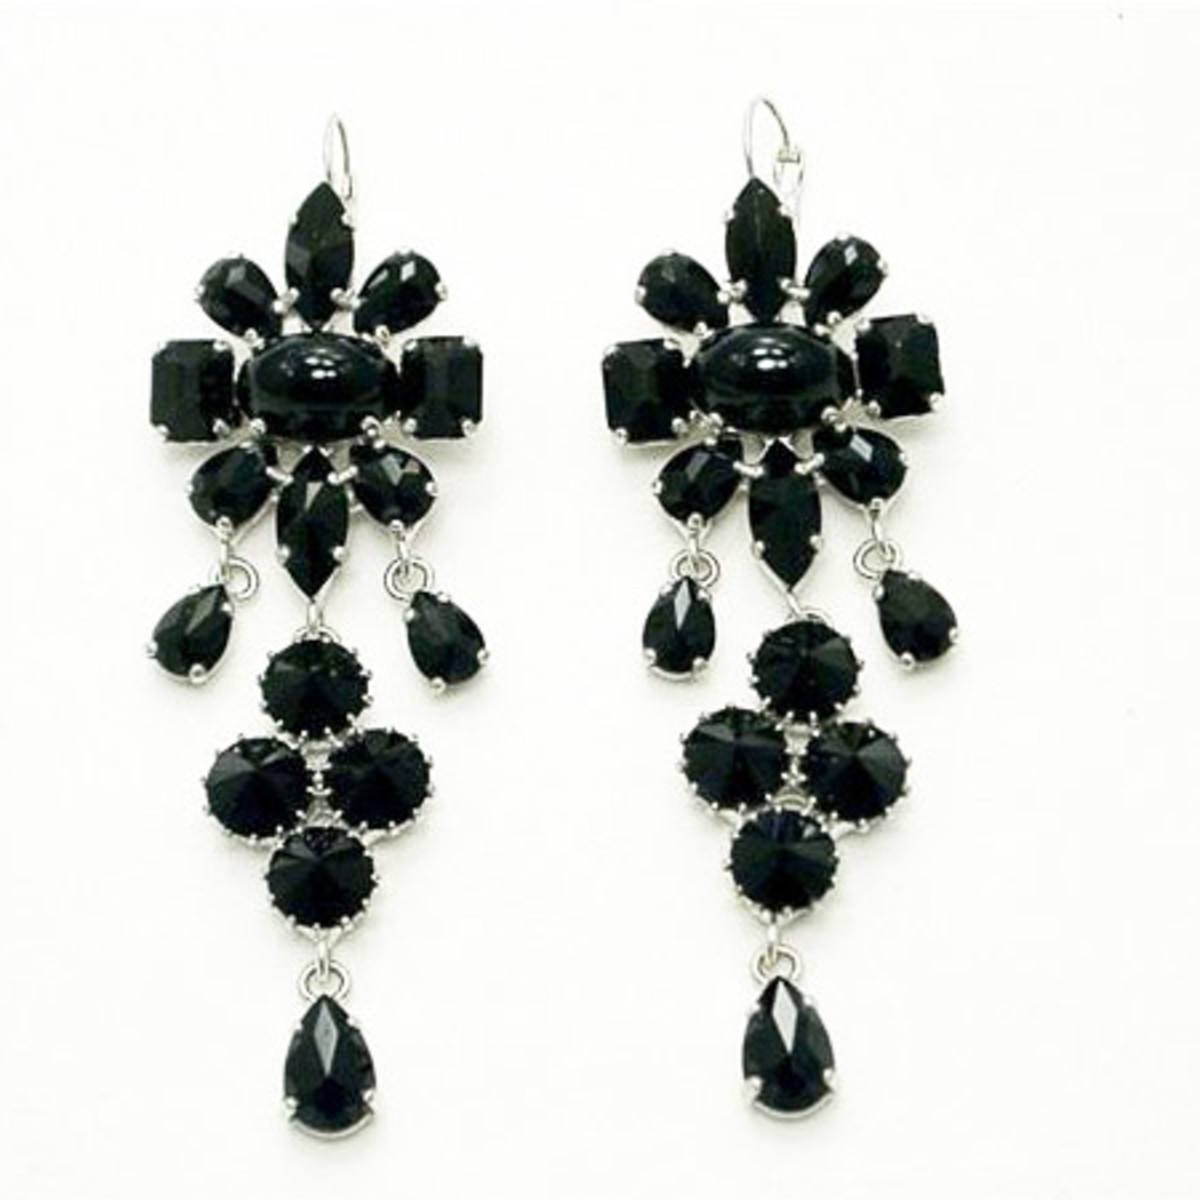 News_Heather Staible_Sex and the City_Otazu_black drop earrings